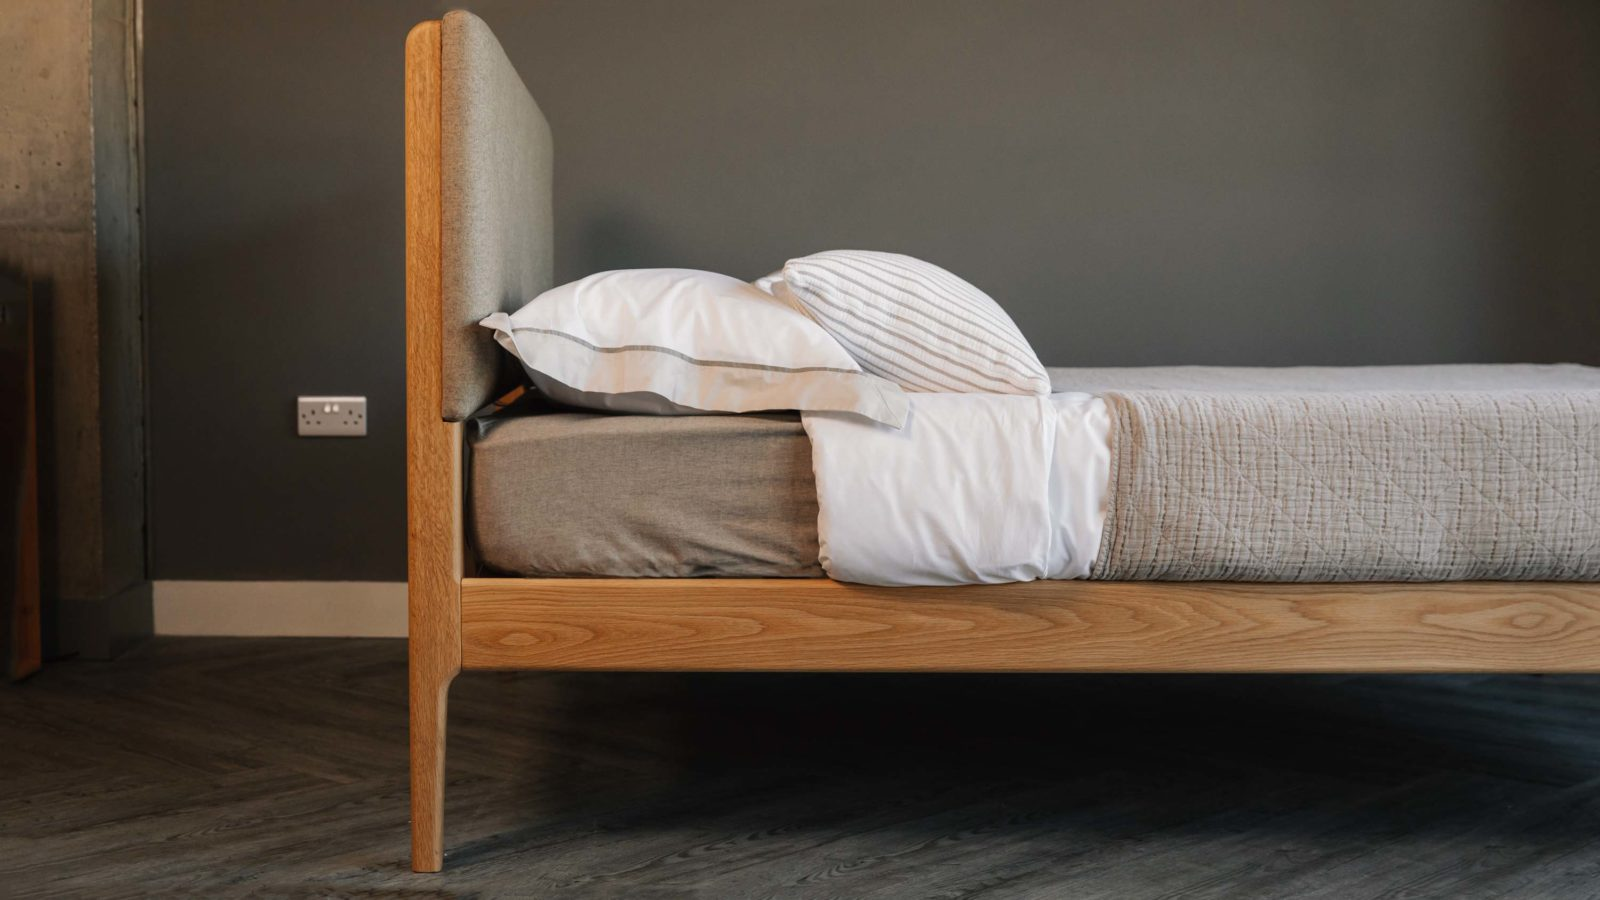 Side view showing the Upholstered Bloomsbury bed Headboard and Oak frame